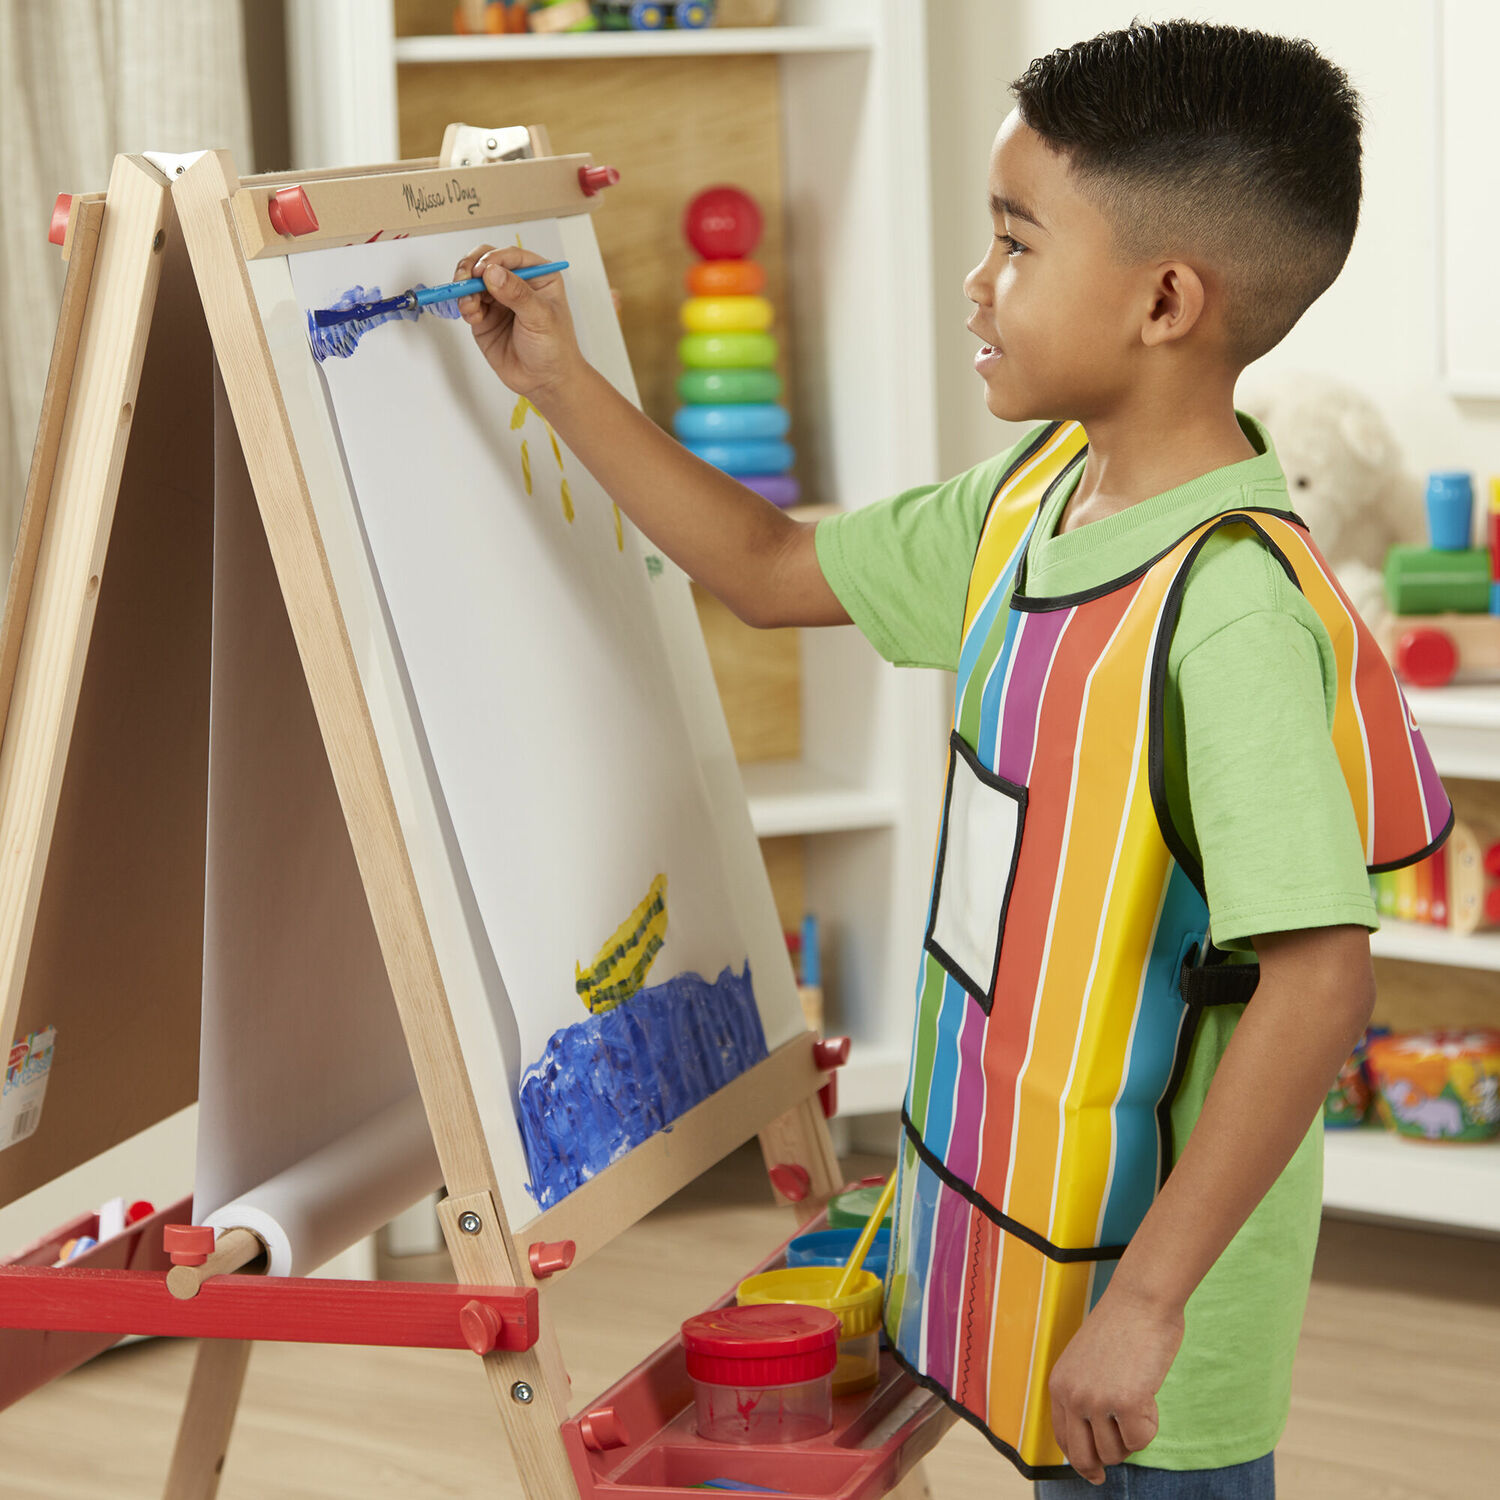 melissa and doug easel paper Melissa & doug easel accessory set - paint, cups, brushes, chalk, paper, dry-erase marker: melissa & doug: amazonca: toys & games.